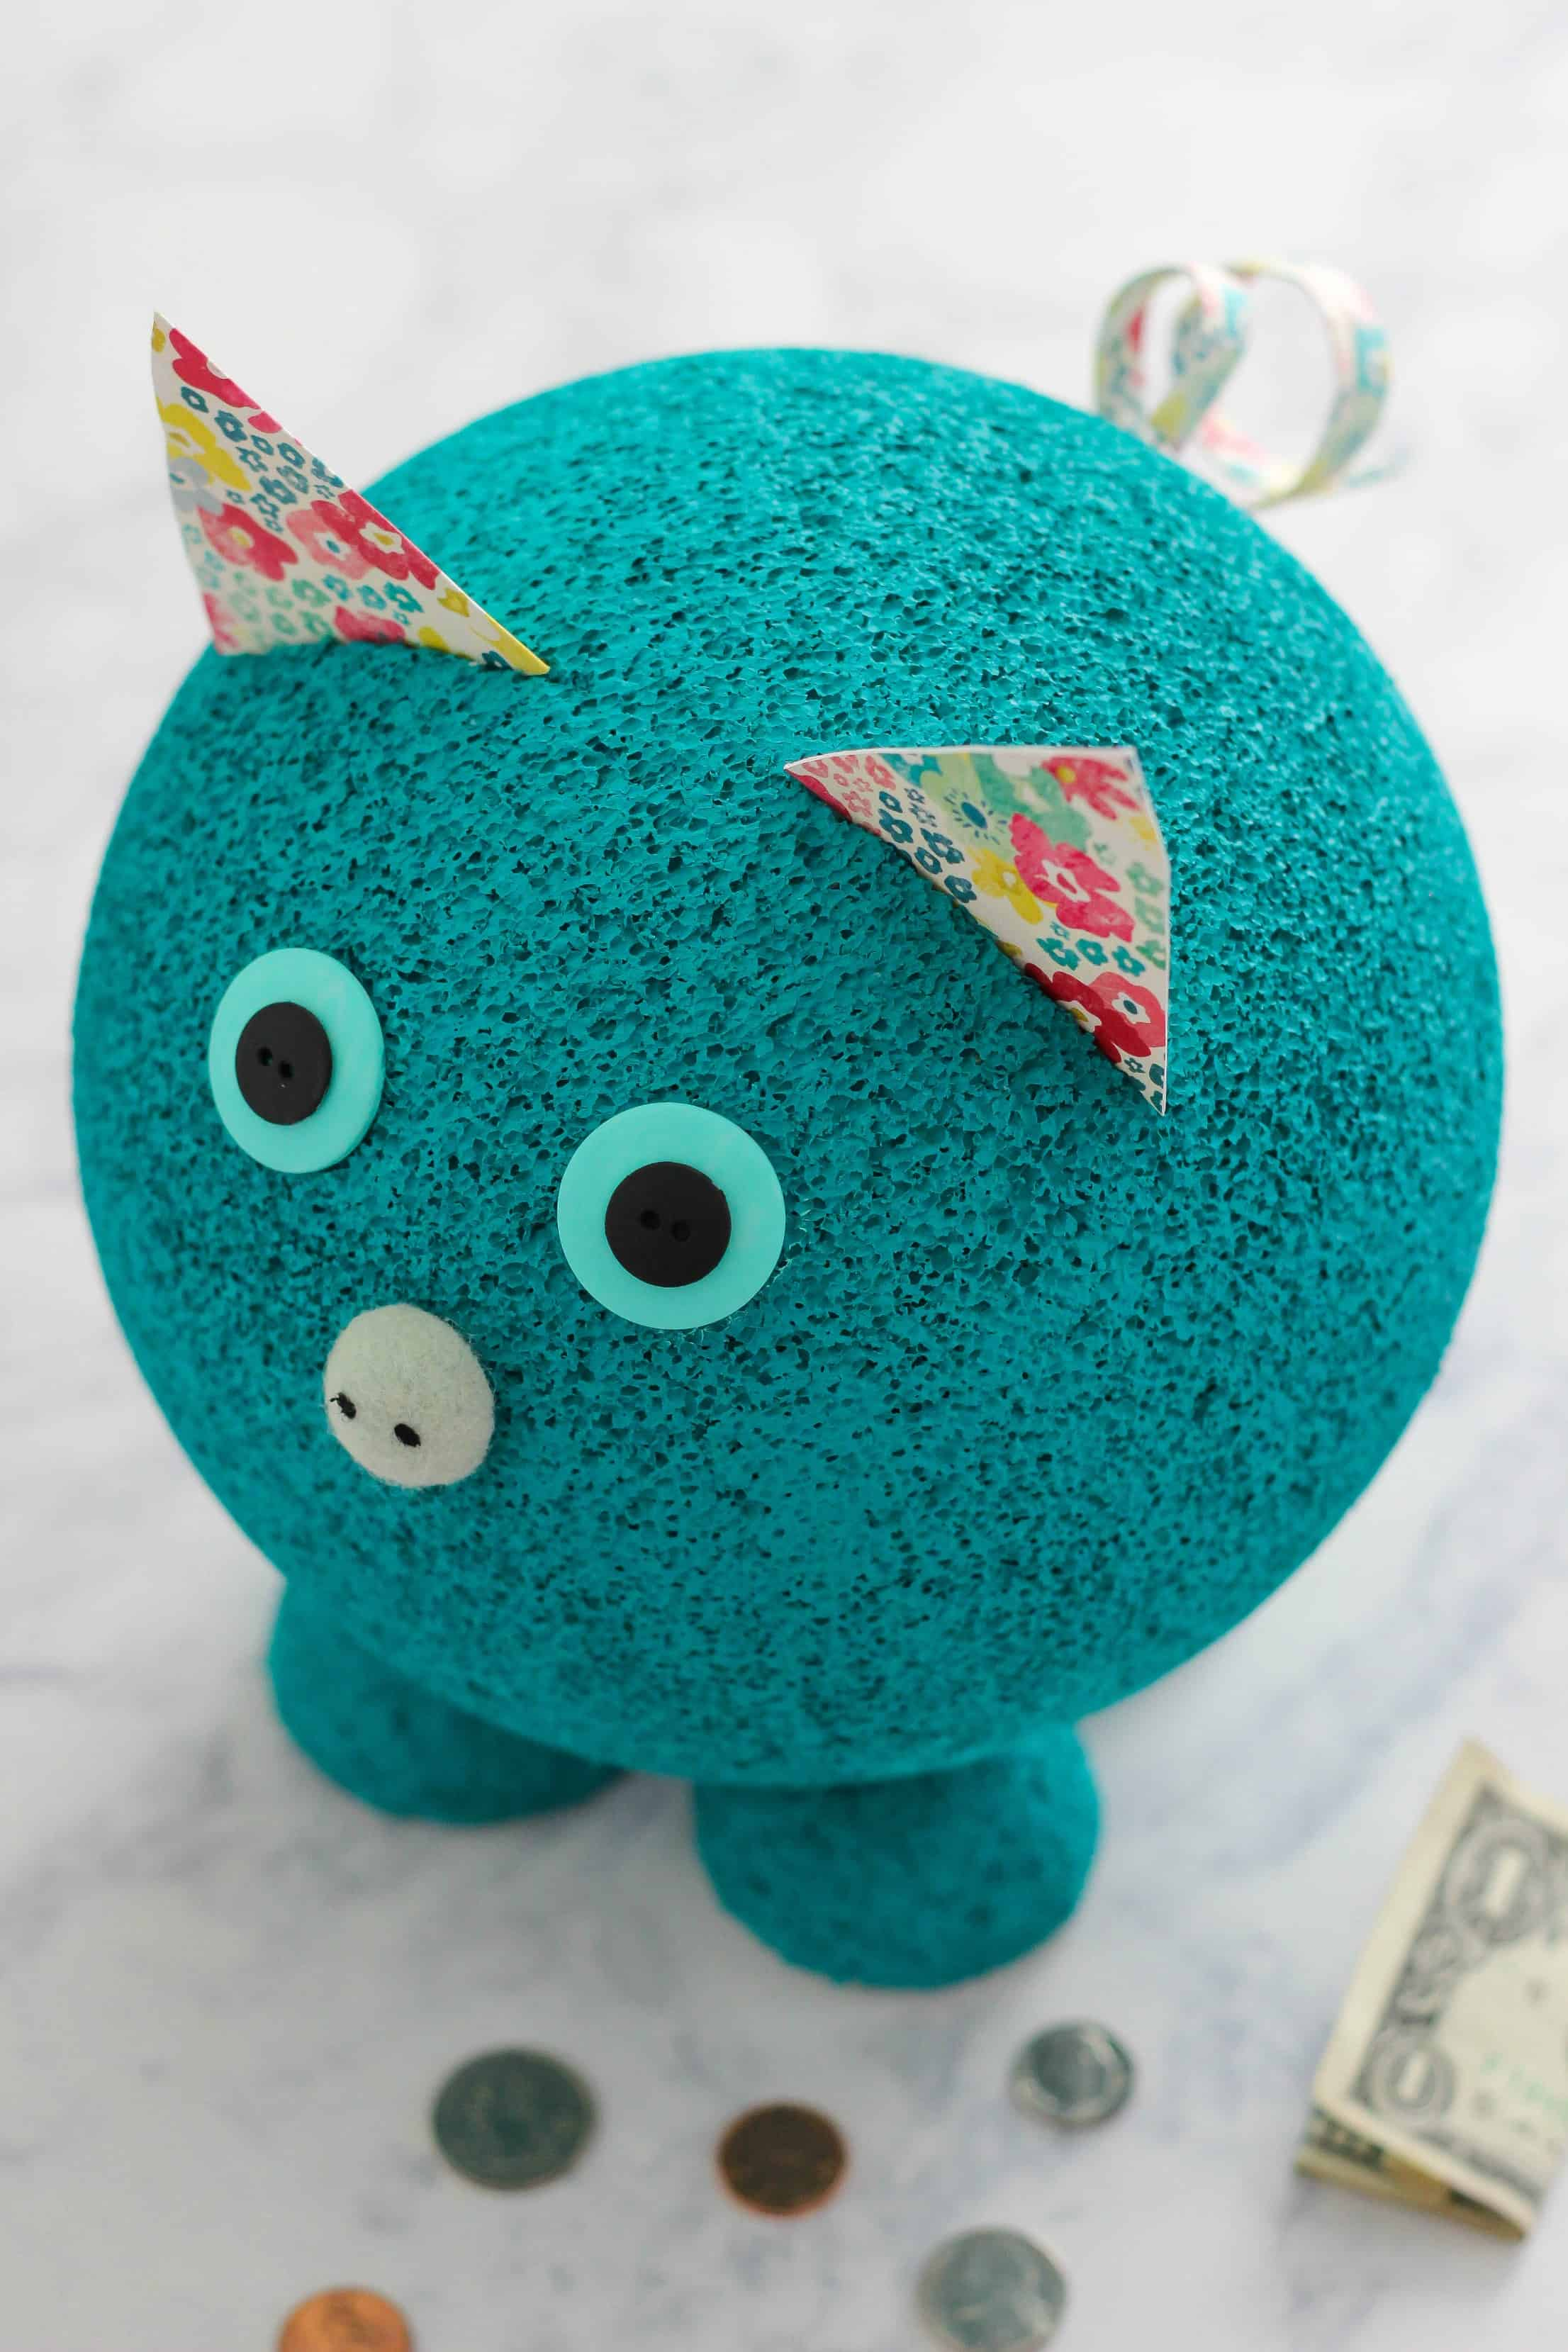 Foam Piggy Bank Learning Activity is a fun DIY craft to teach children the importance of money and how to make correct change.